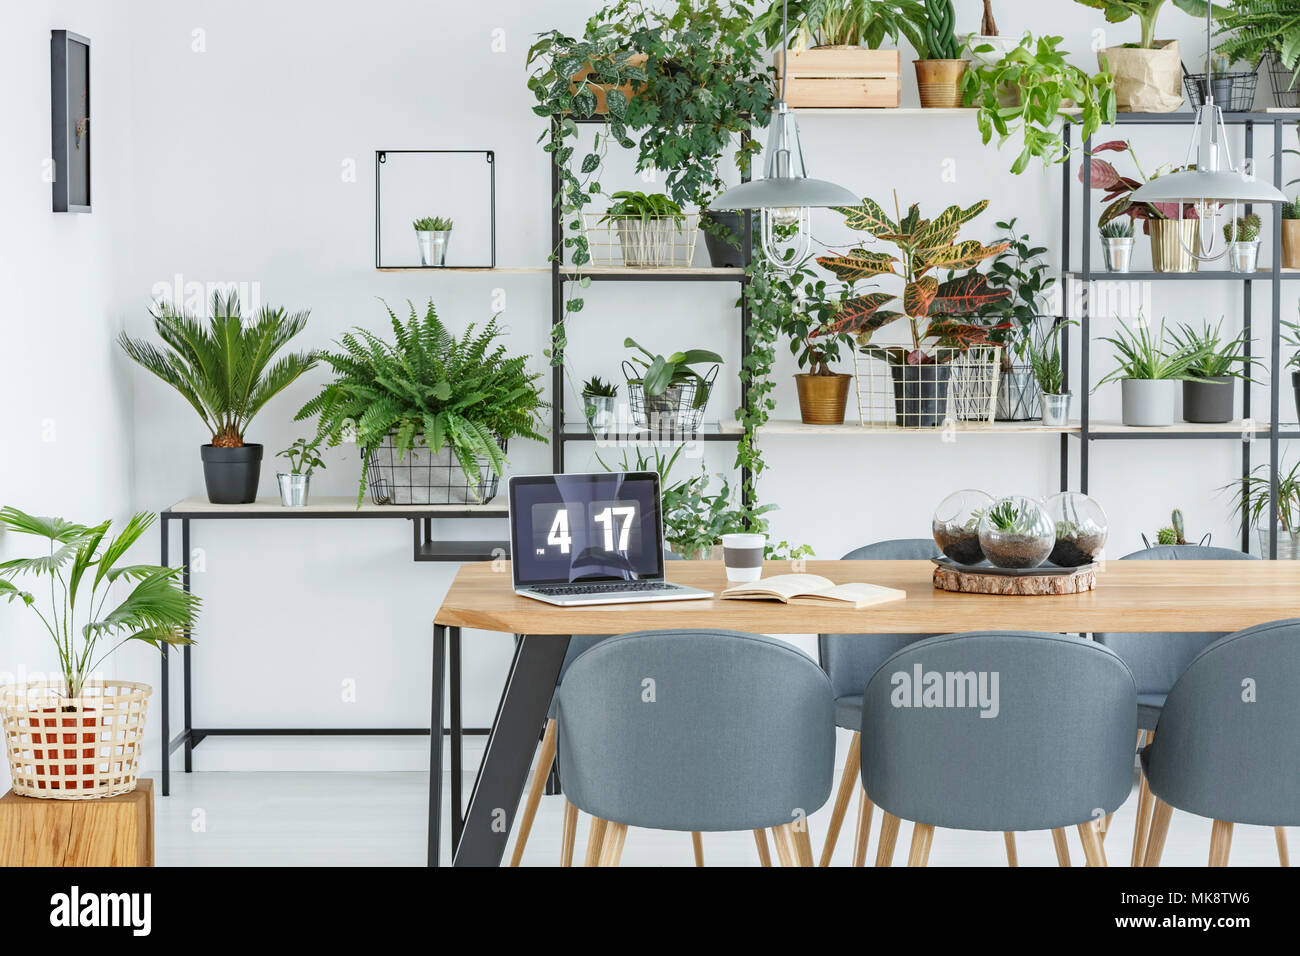 Grey chairs at wooden table with laptop in floral dining room interior with workspace - Stock Image